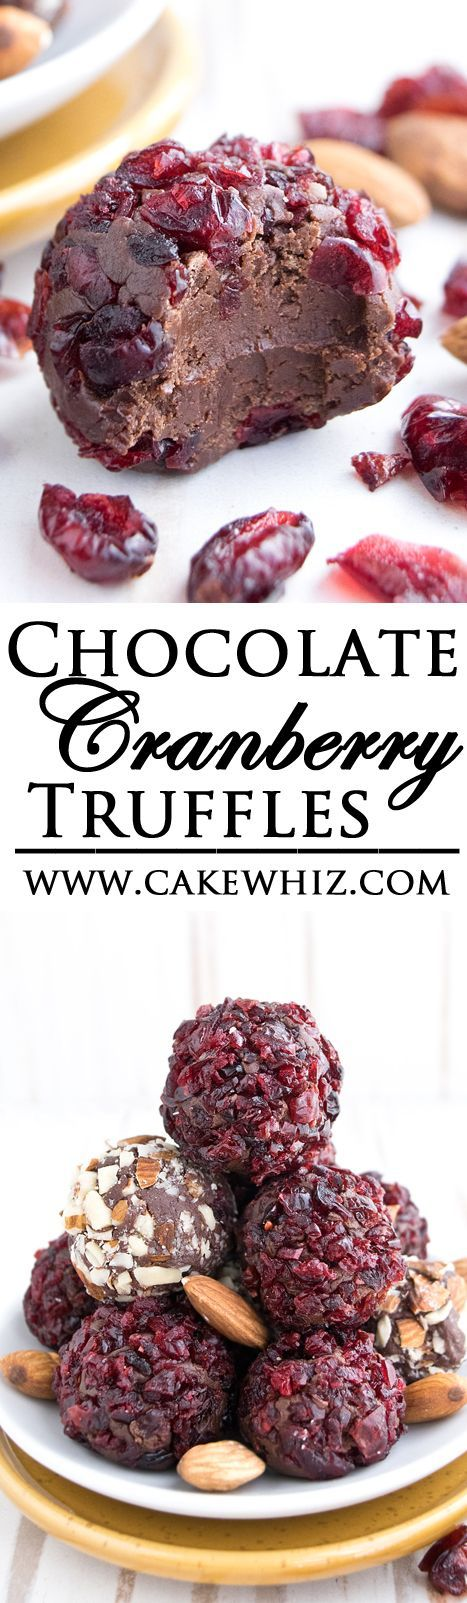 These fudgy CHOCOLATE CRANBERRY TRUFFLES are really simple to make with just 3…